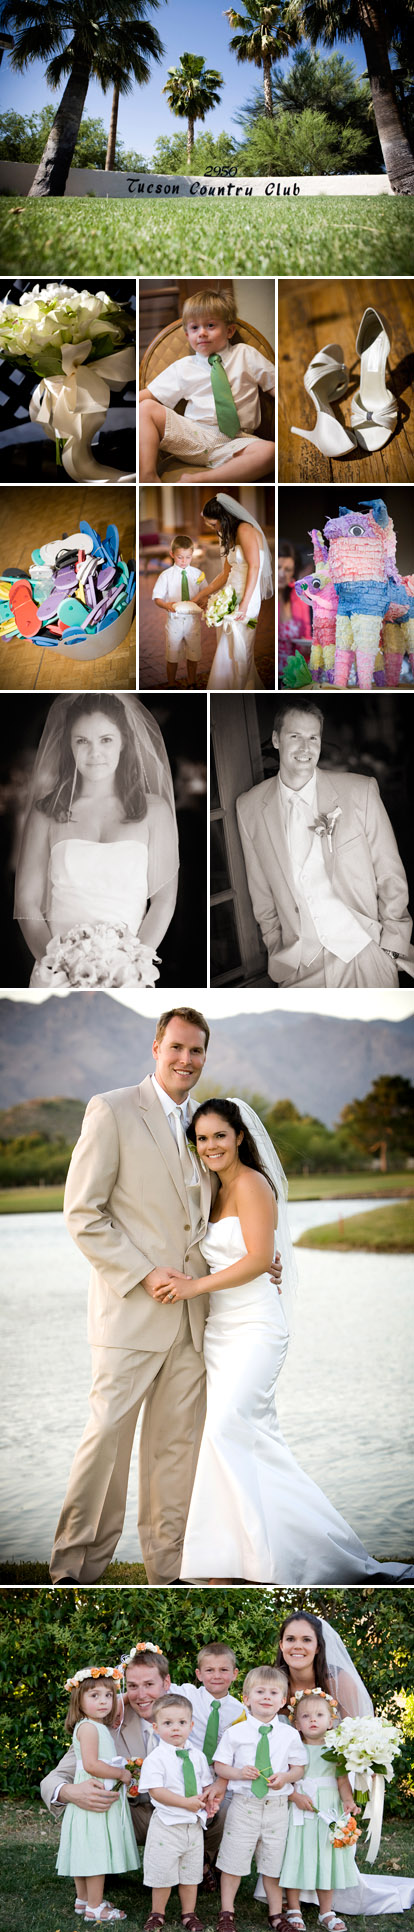 Tuscan, Arizona outdoor wedding ceremony at the Tuscan Country Club, images by Roberto Valenzuela Photography